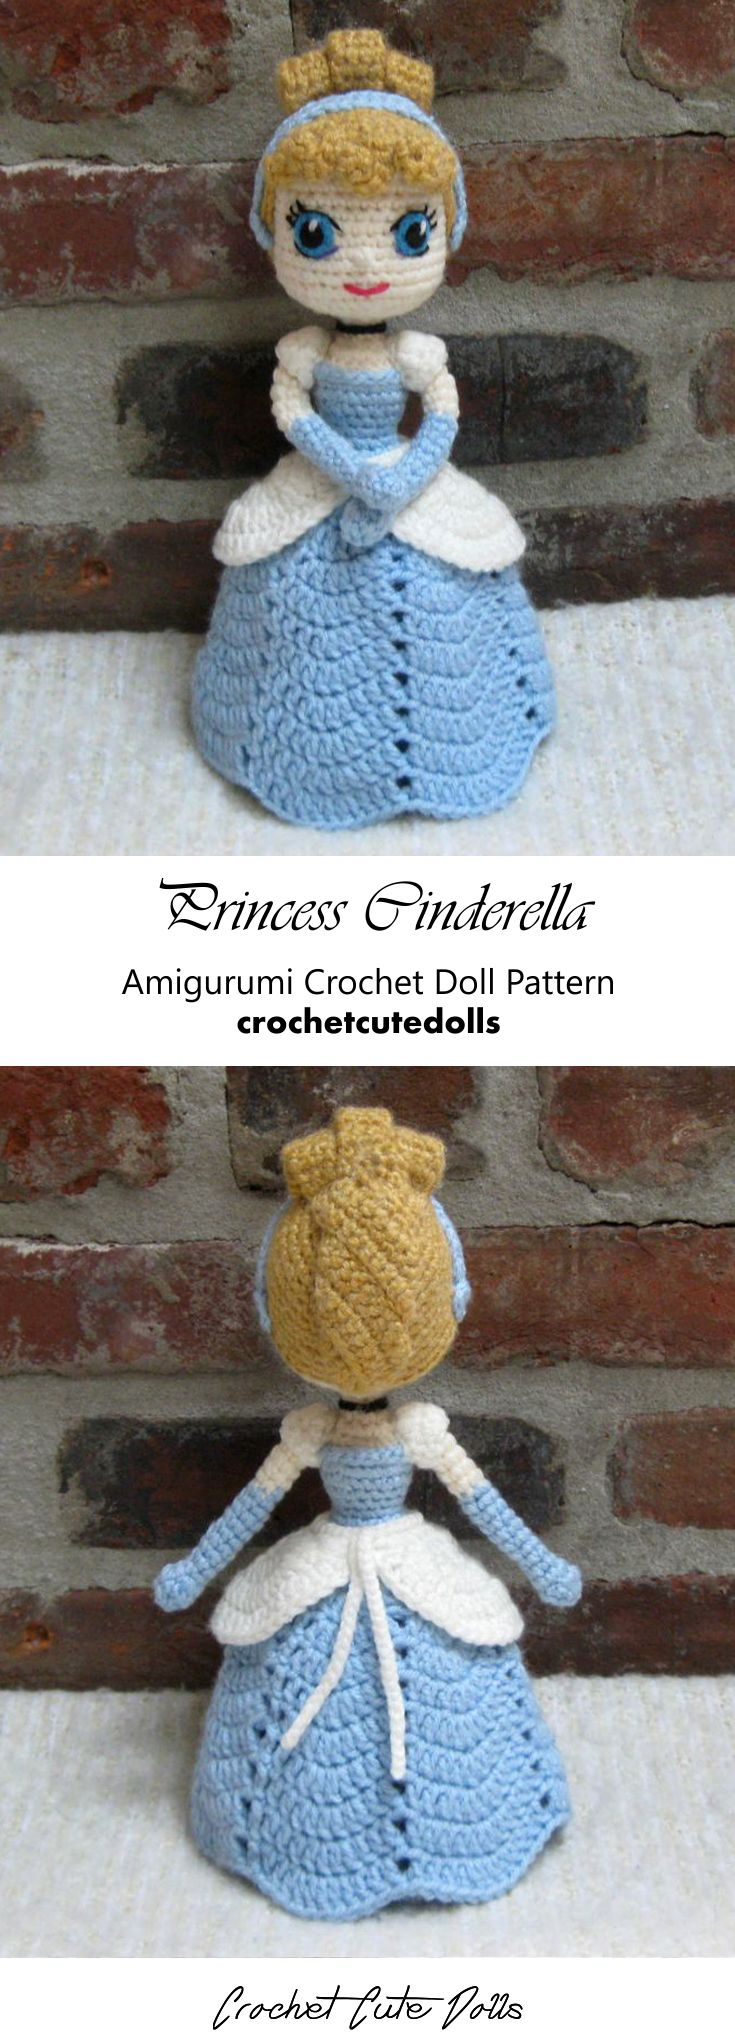 Amigurumi Crochet Doll Pattern & Tutorial für die Disney Princess Cinderella von Crochet Cute Dolls